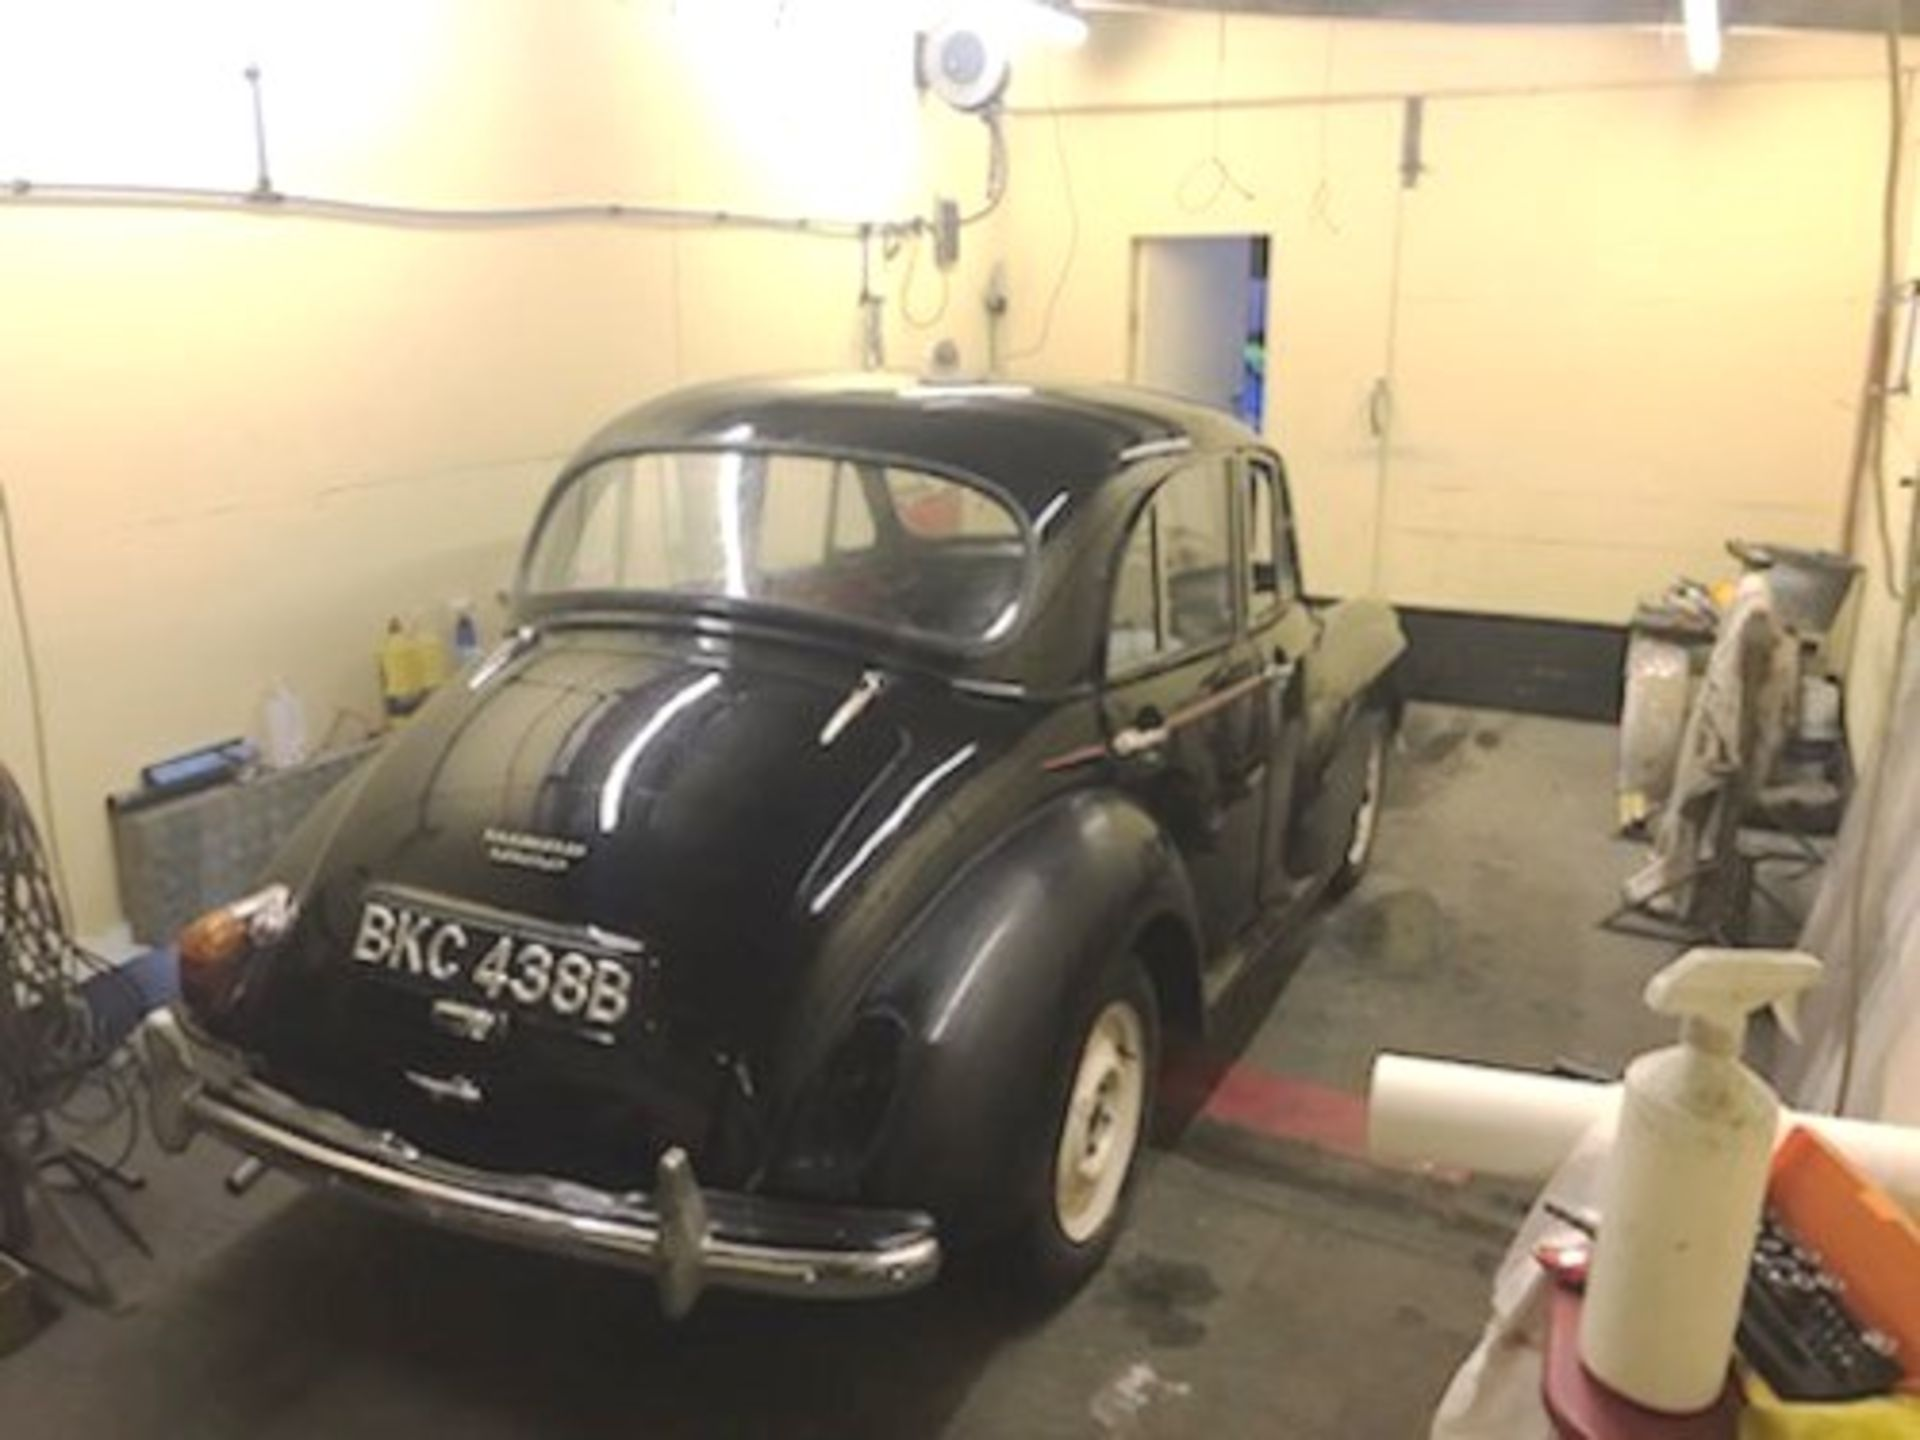 1964 Morris Minor 1000 in original black. The car has been restored with new flooring and vinyl - Image 5 of 16